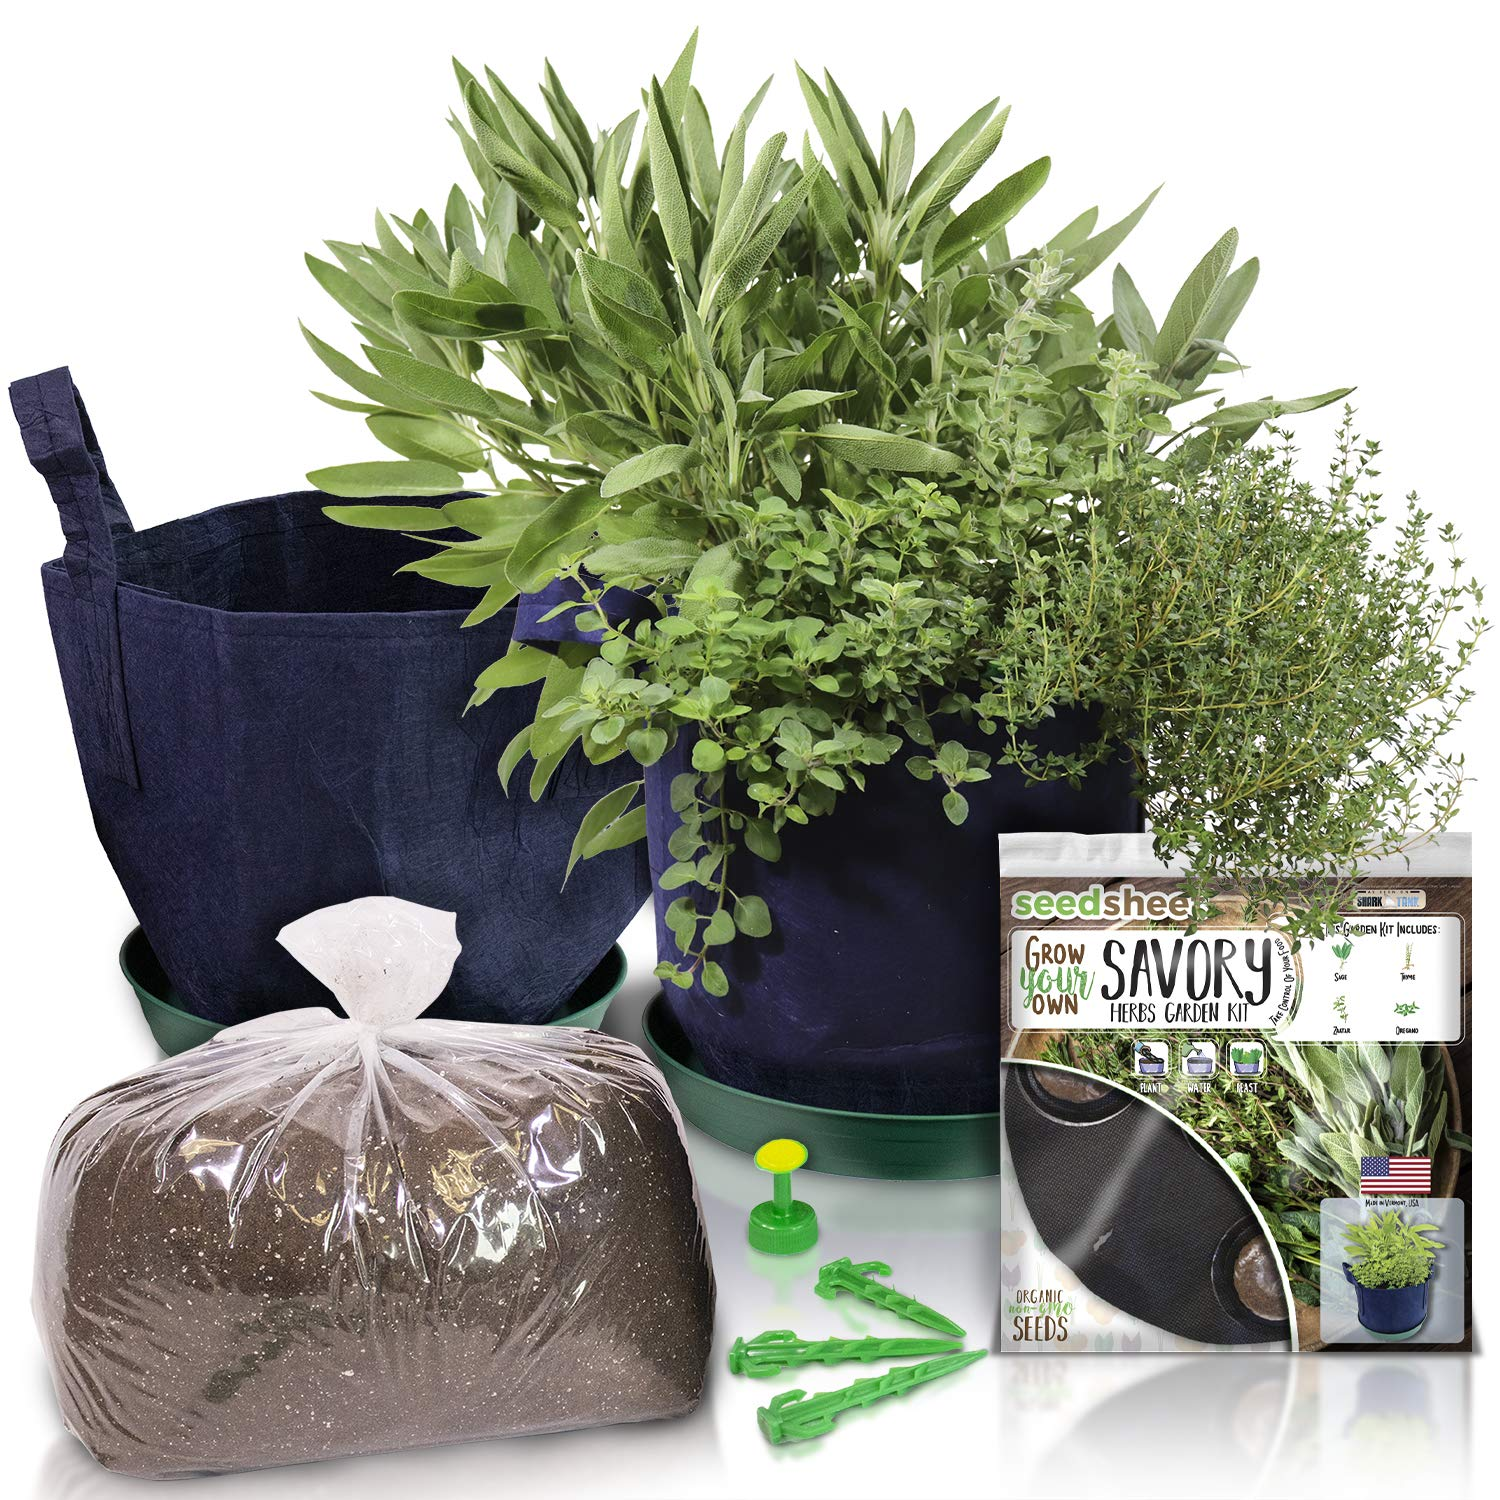 Grow Your Own Savory Herbs Complete Container Gardening Kit, with Sage, Thyme, Zaatar, and Oregano, As Seen On Shark Tank by Seedsheet